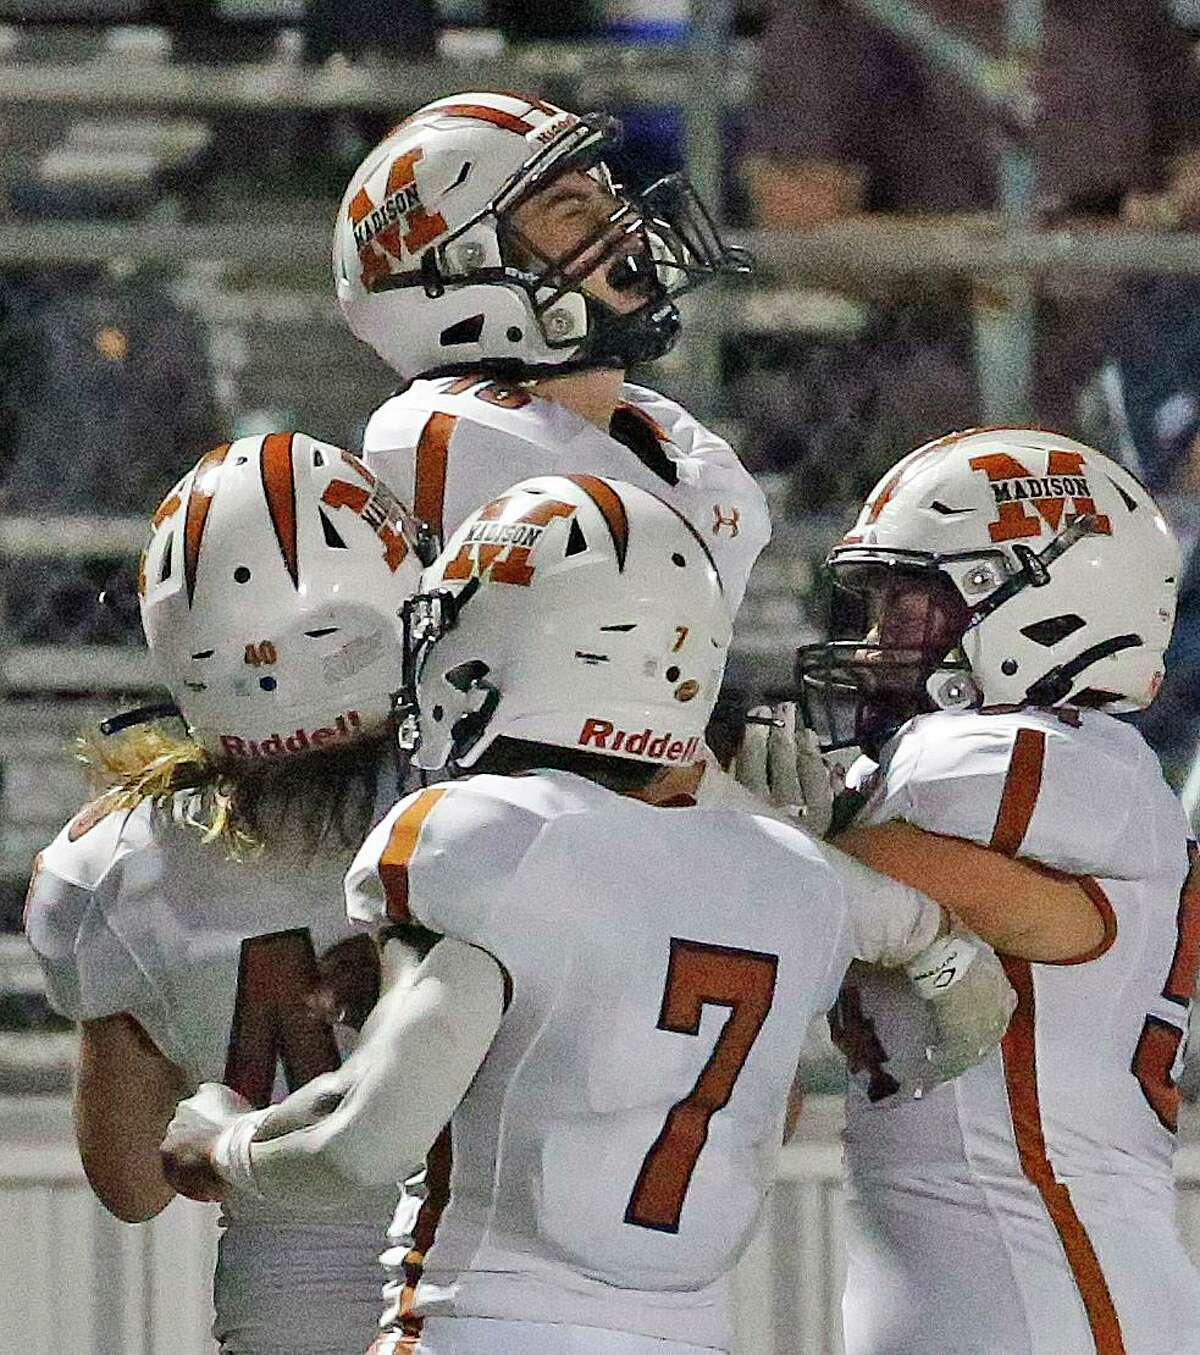 Madison Damian Mendoza(15) is lifted up by teammates after his interception stopped a Smithson Valley drive at Smithson Valley HS on Friday, Sept. 3. 2021.